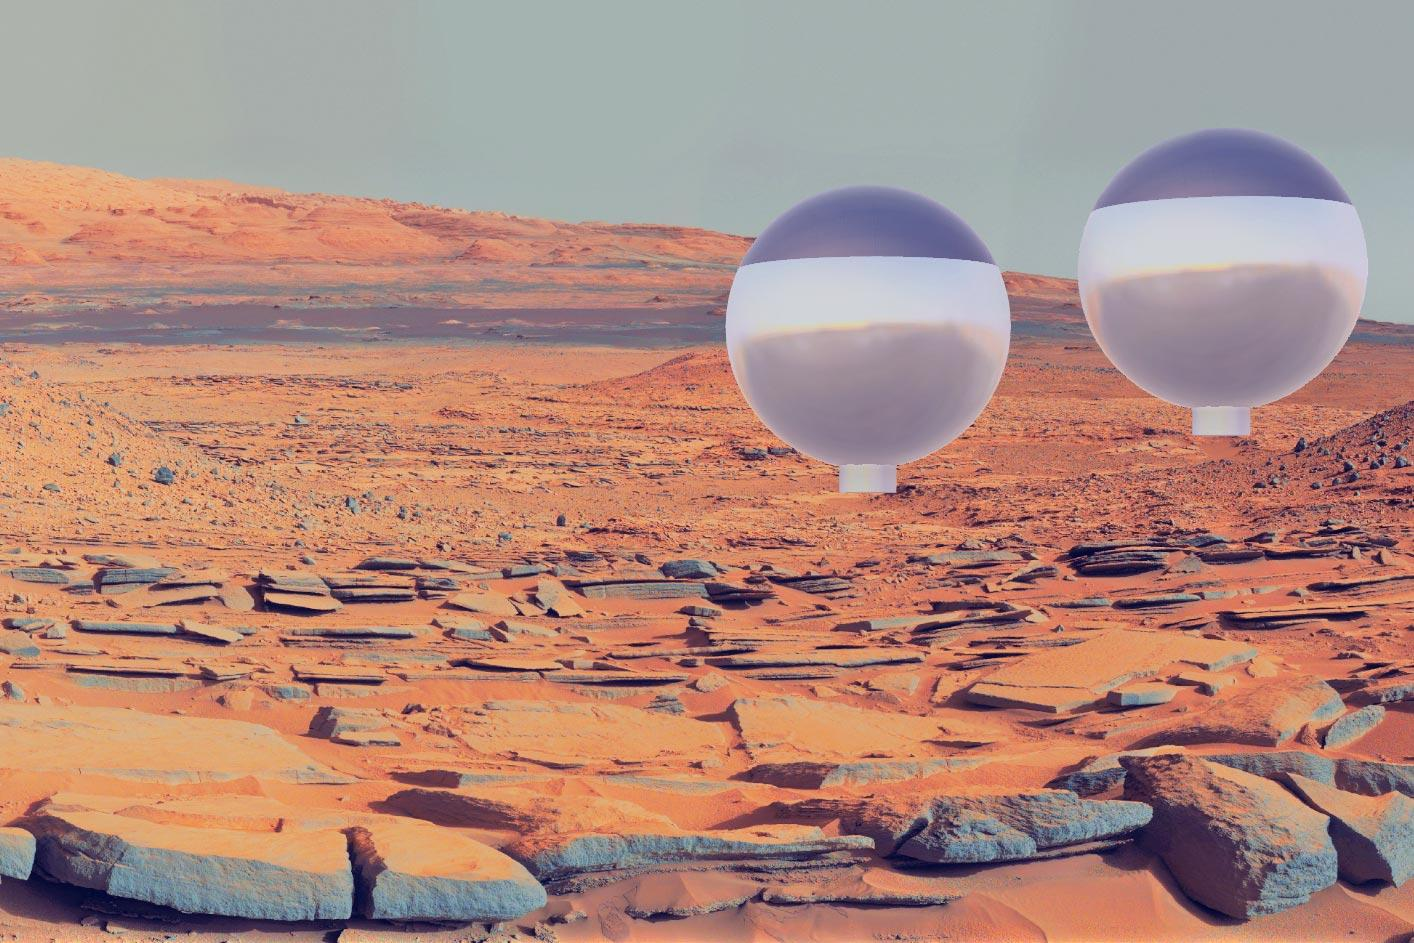 Rendering of what the Gupta team's solar-power-harvesting balloons might look like on the surface of Mars.